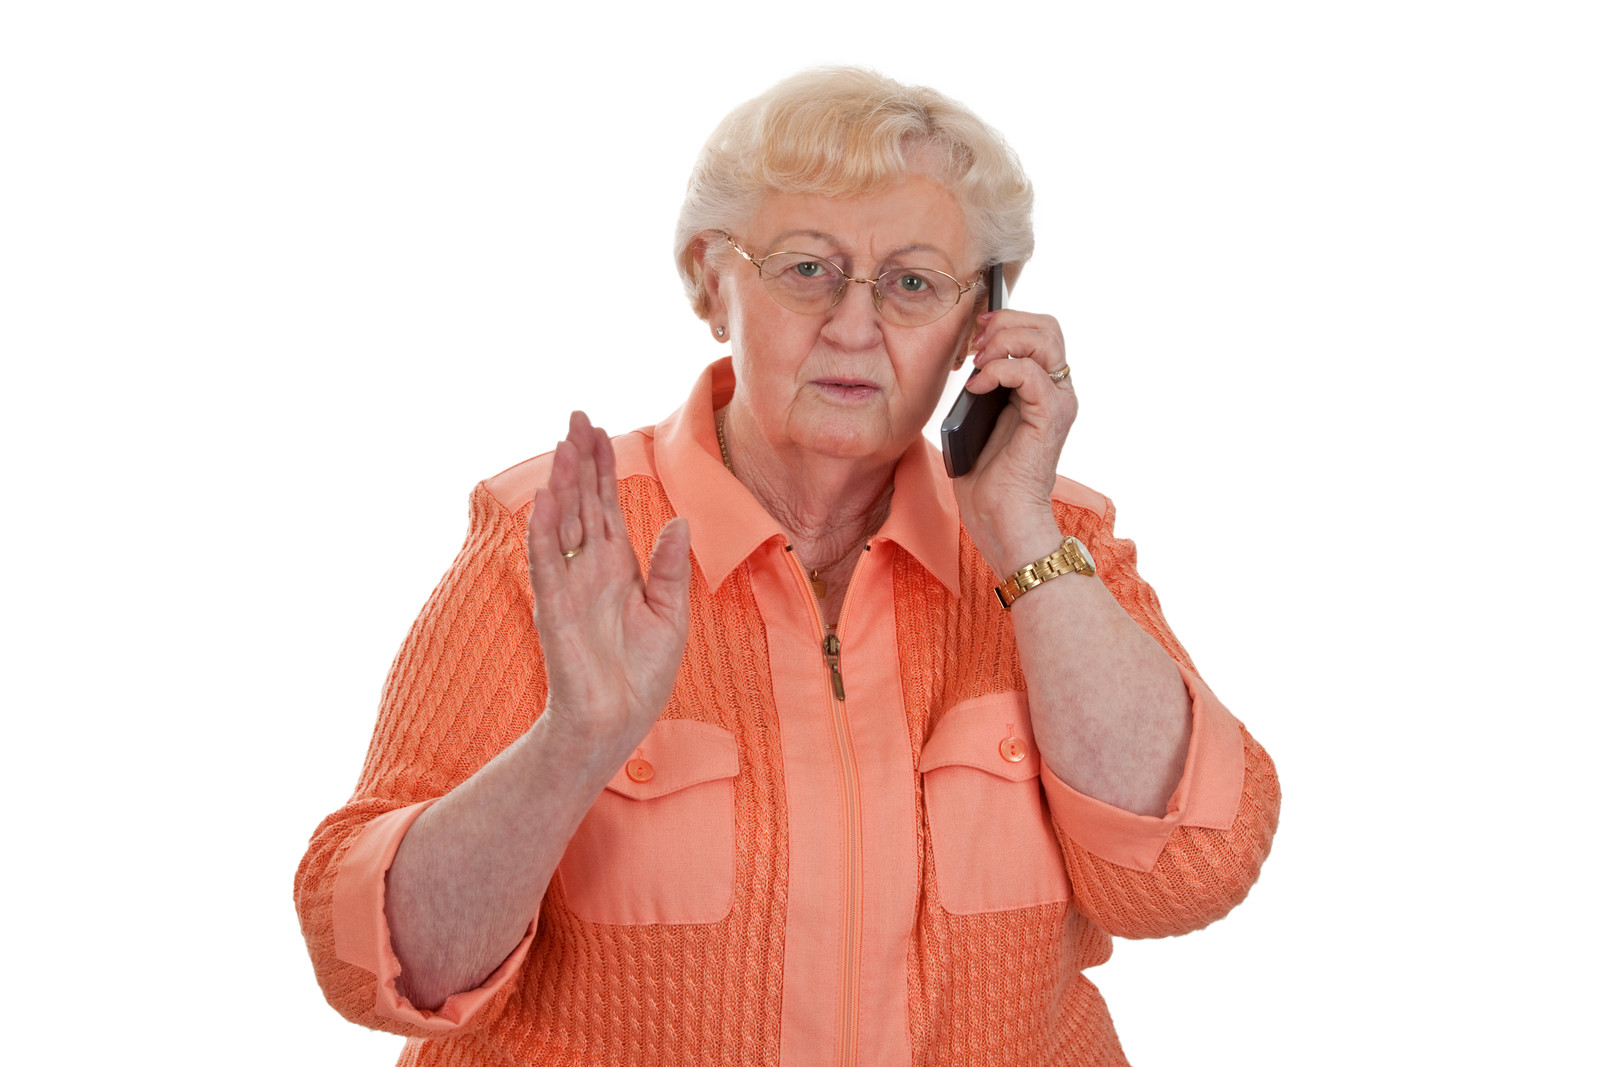 senior woman on the phone with her hand up in a stop motion